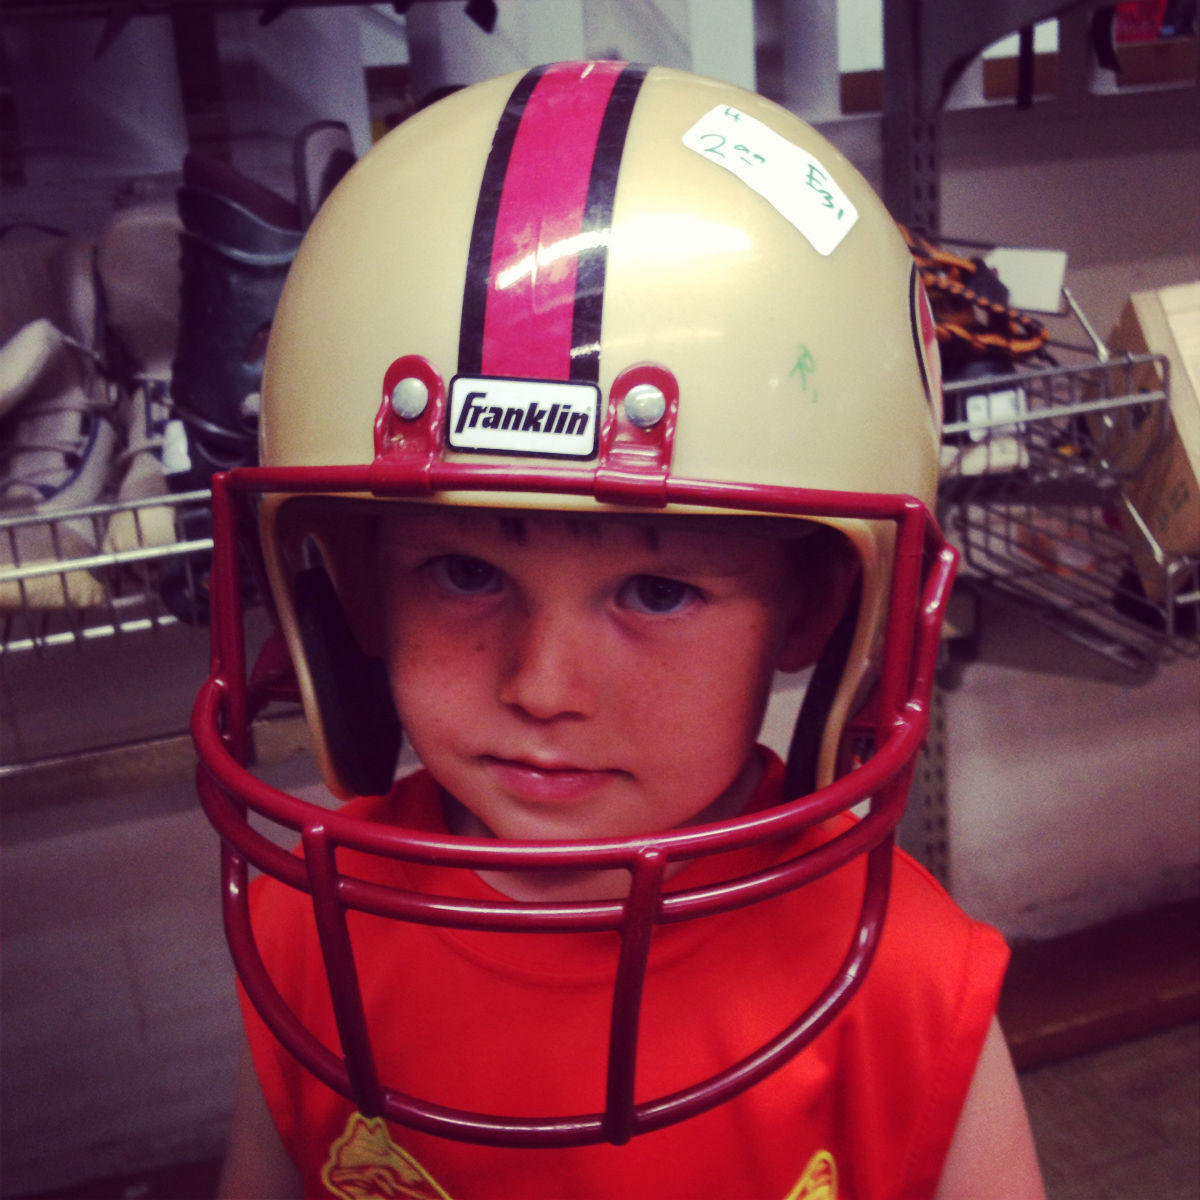 We bought Noah a San Francisco 49ers helmet as a little treat for getting out of hospital